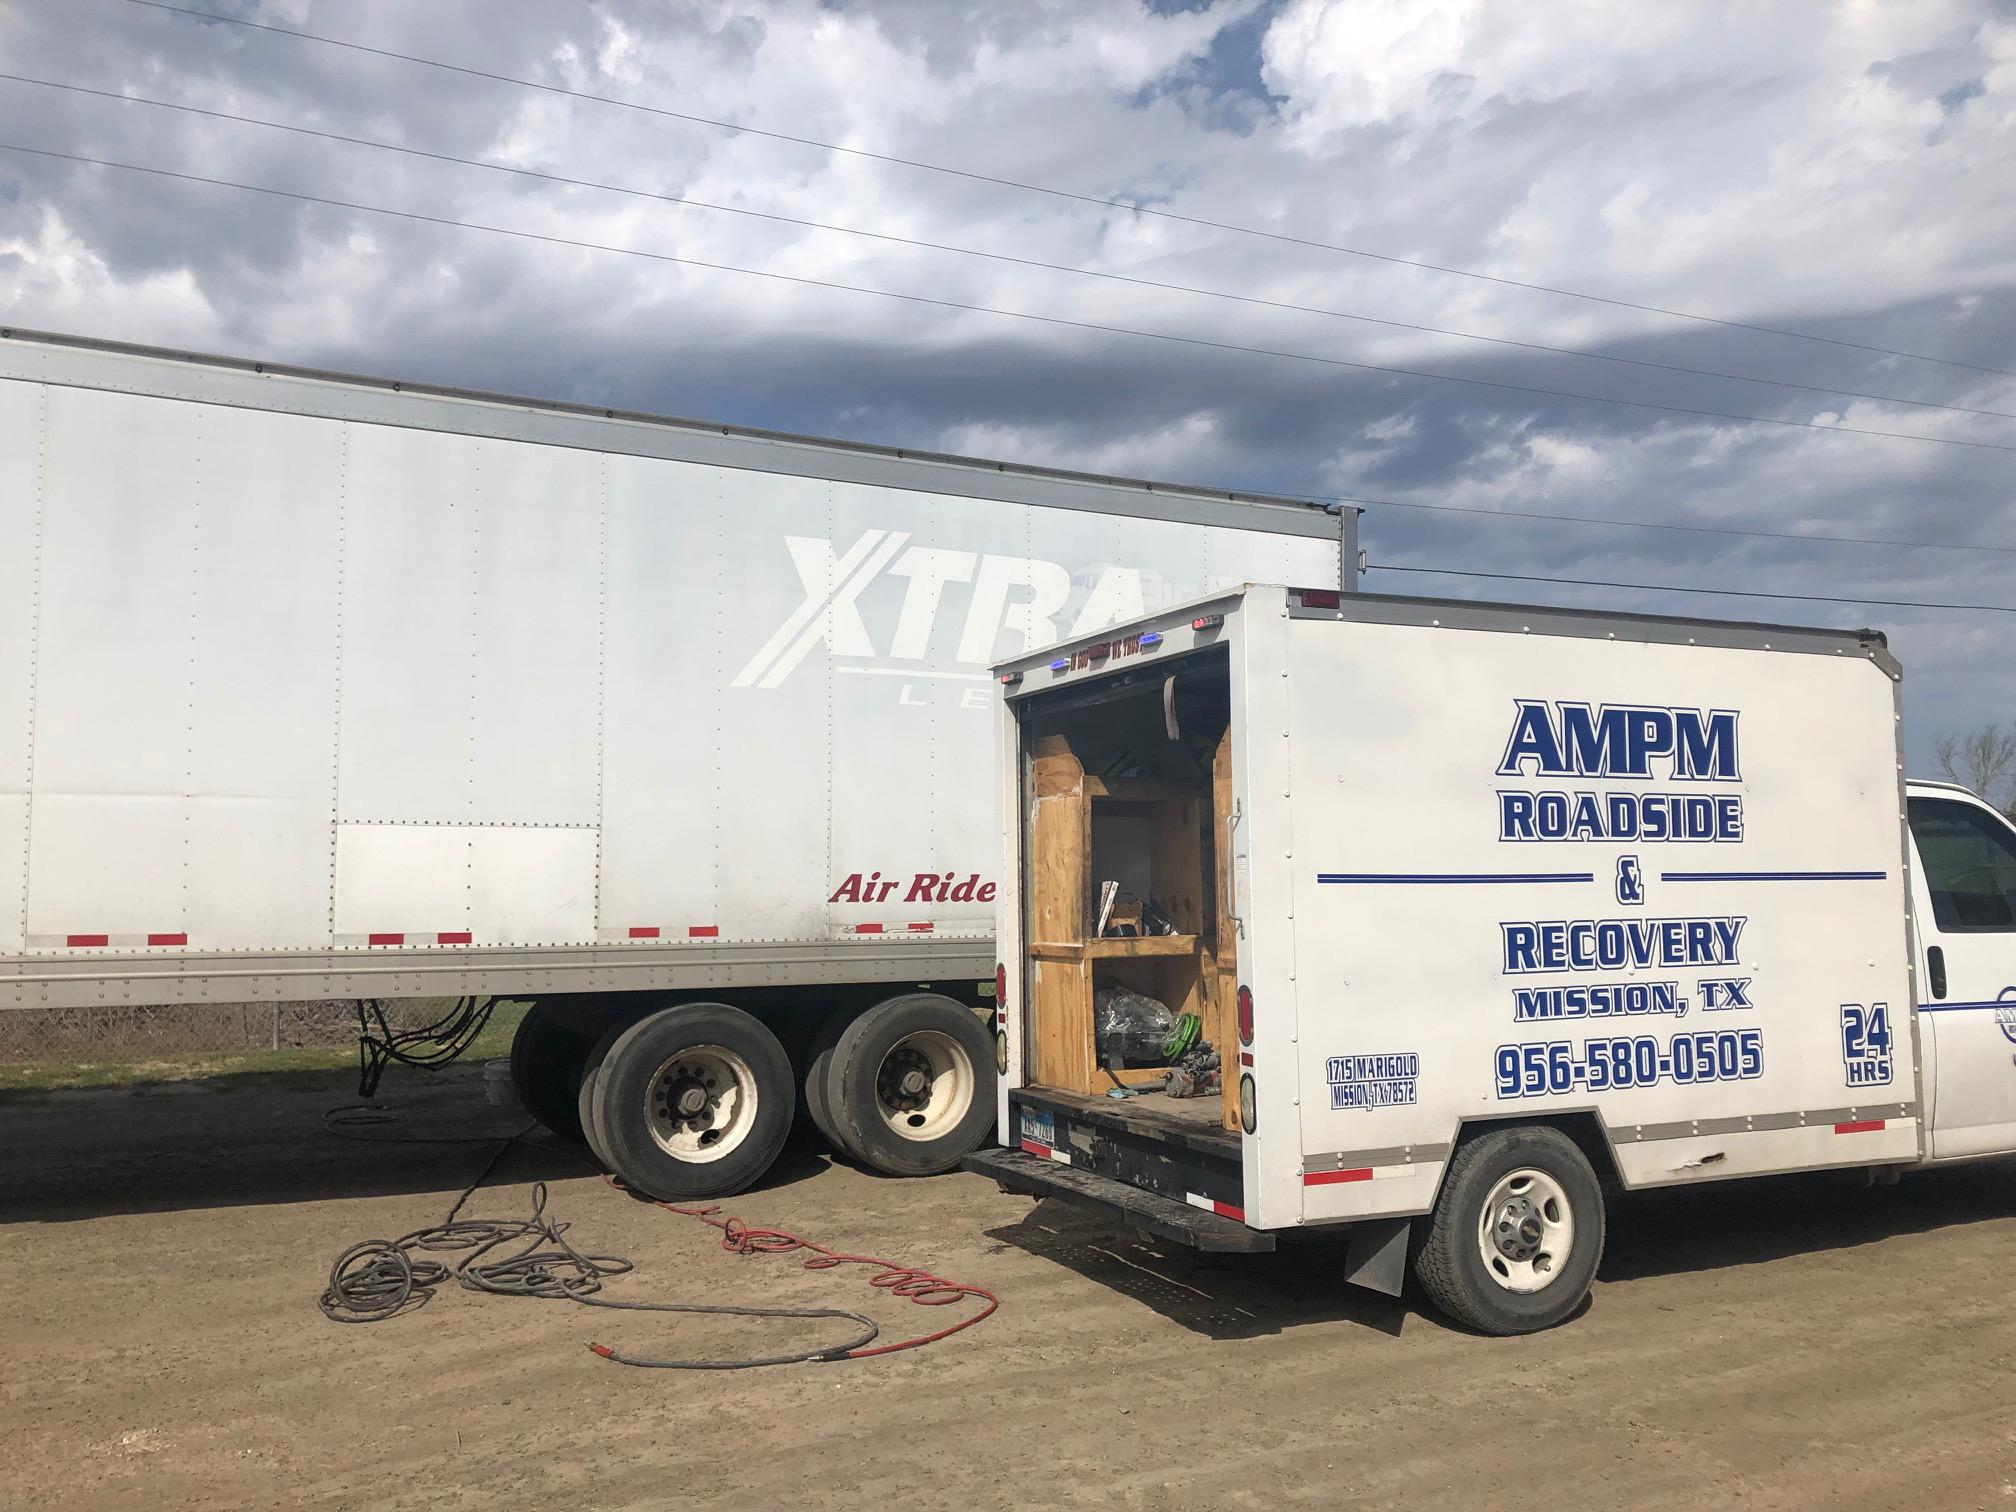 AMPM Roadside & Recovery image 13